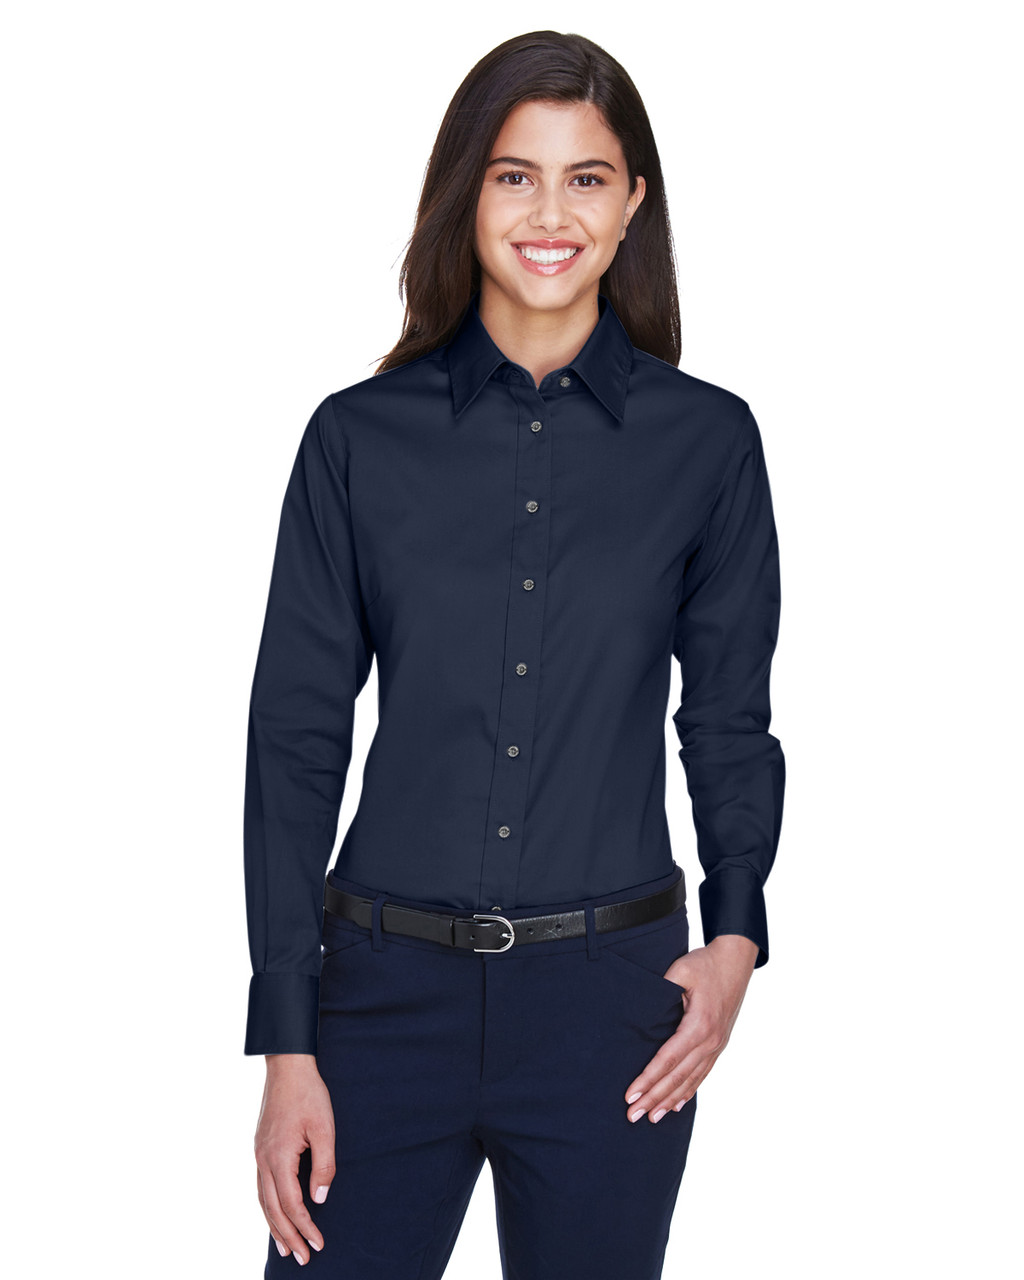 Navy - M500W Harriton Easy Blend Long-Sleeve Twill Shirt with Stain-Release | BlankClothing.ca